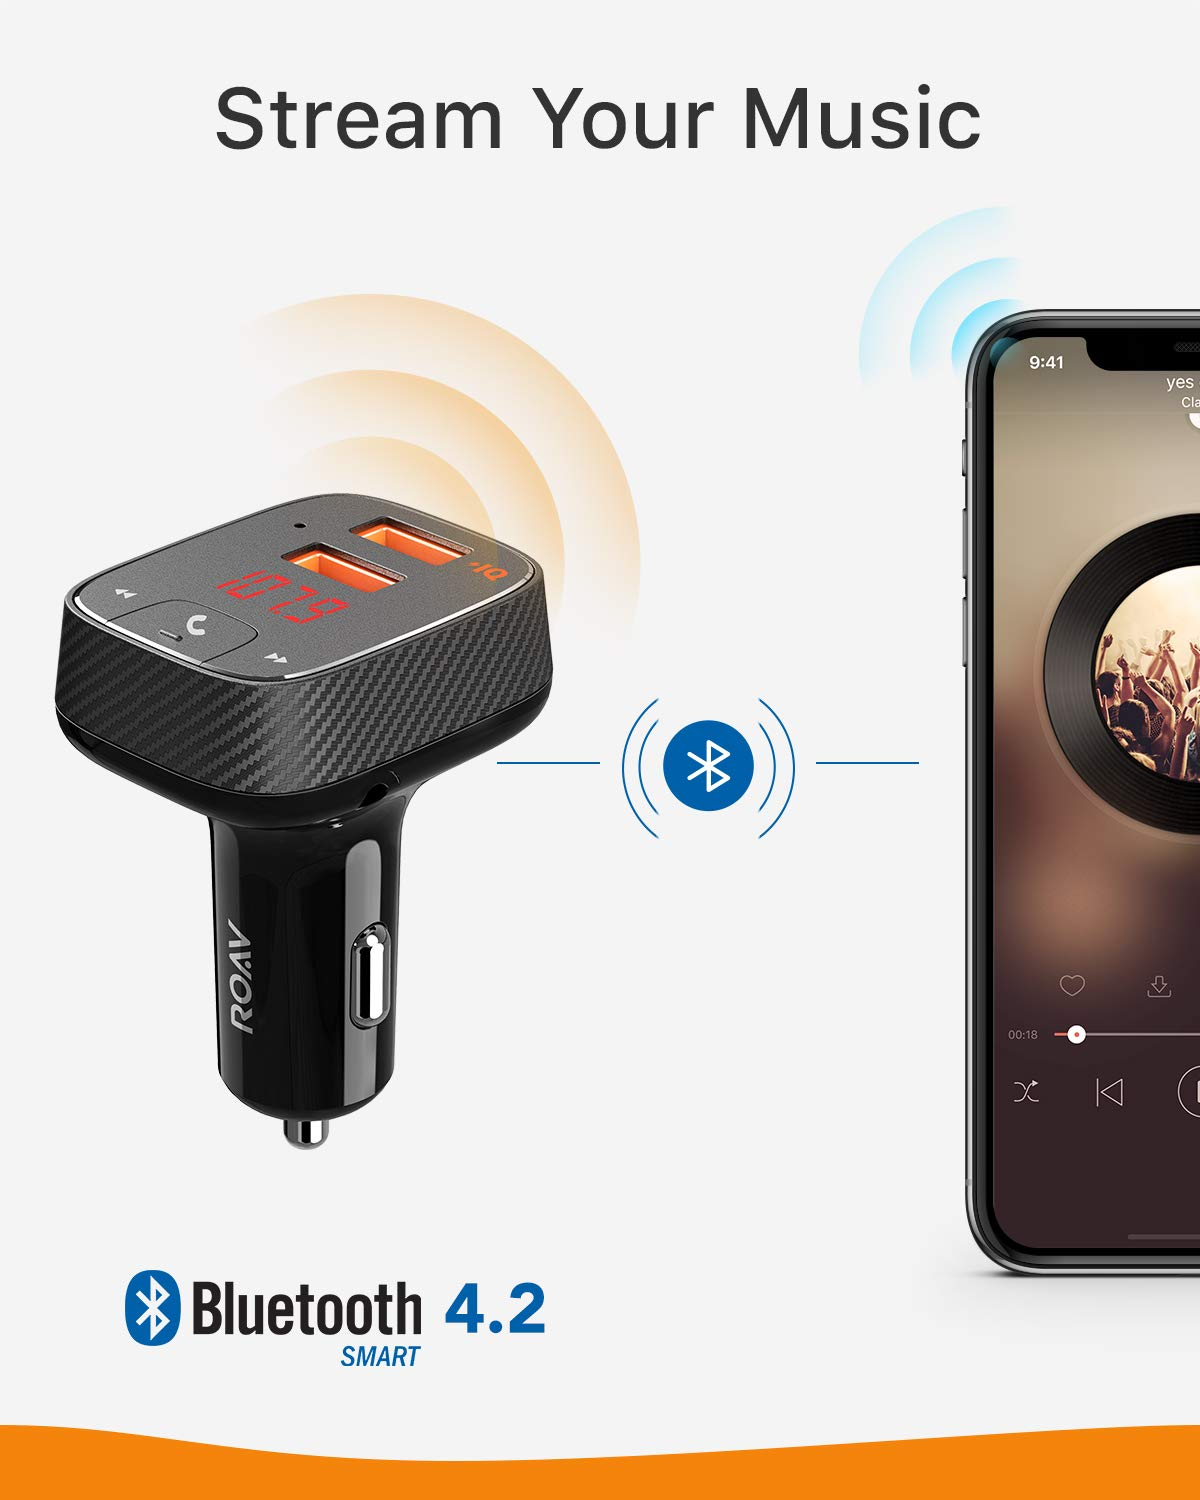 Roav SmartCharge F2, by Anker, FM Transmitter, Bluetooth Receiver, Car Charger with Bluetooth 4.2, Car Locator, App Support, 2 USB Ports, PowerIQ, AUX Output, and USB Drive to Play MP3 Files by ROAV (Image #4)